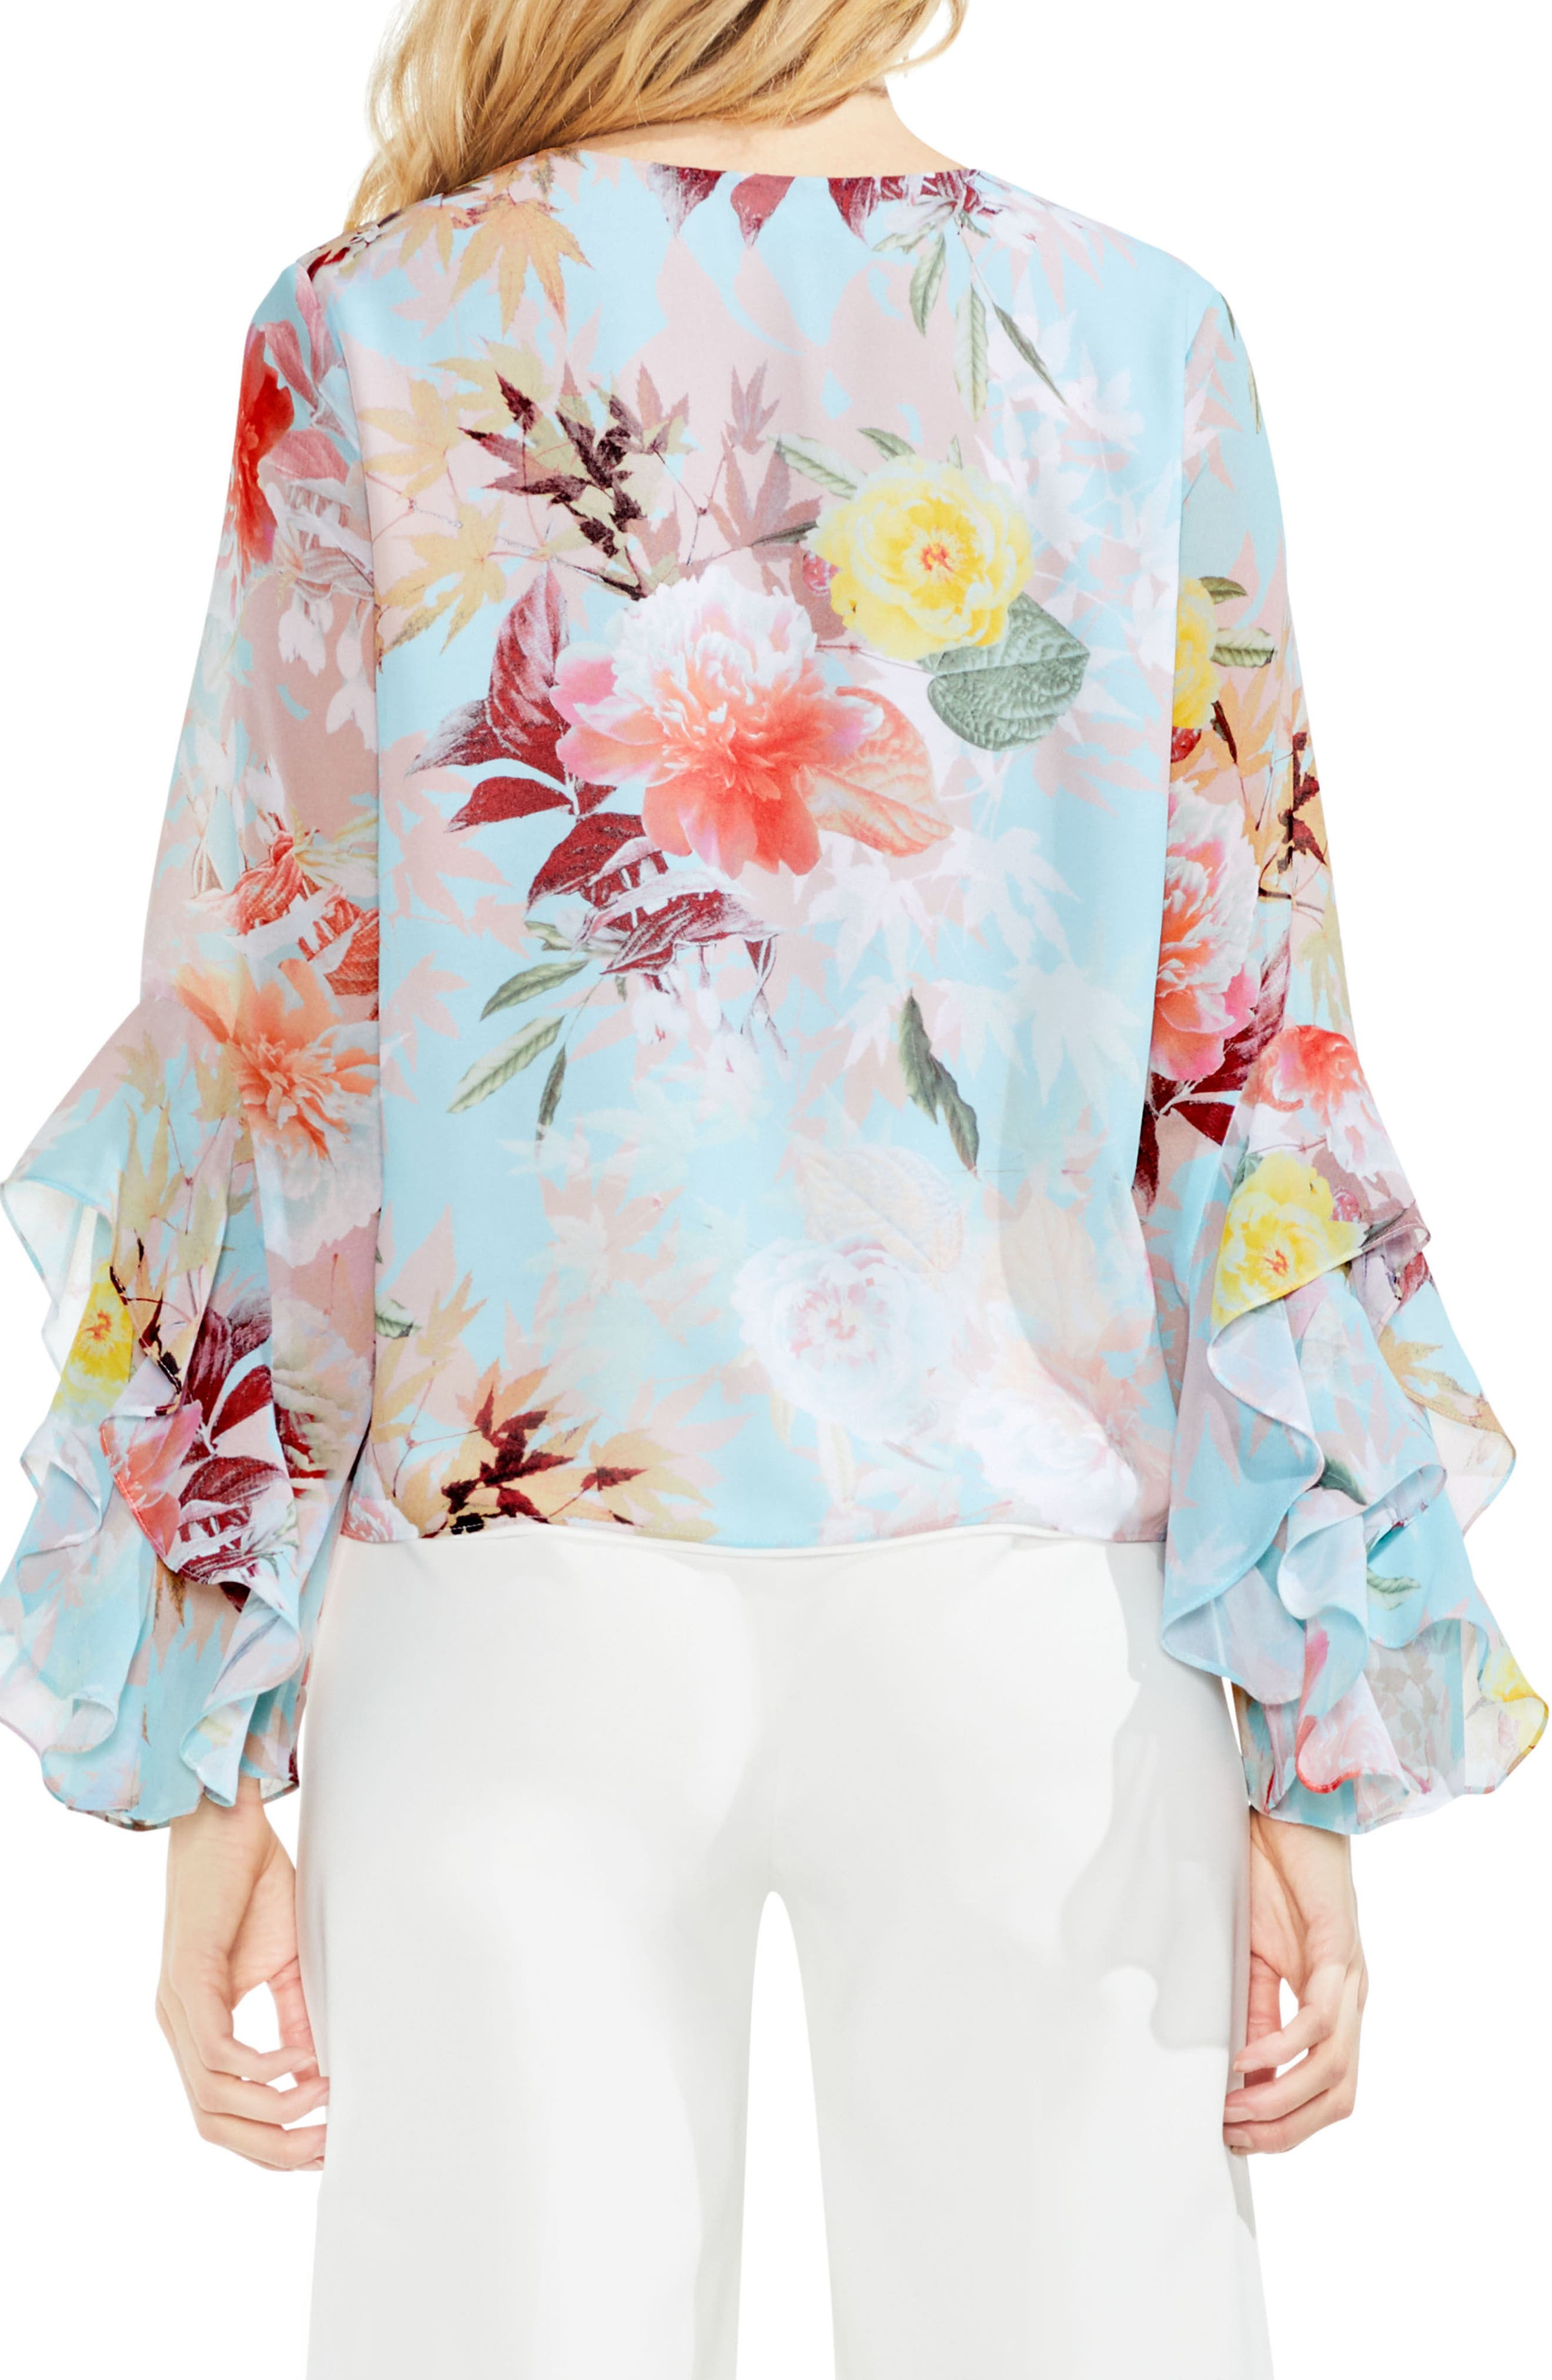 Faded Bloom Ruffle Sleeve Blouse,                             Alternate thumbnail 2, color,                             487